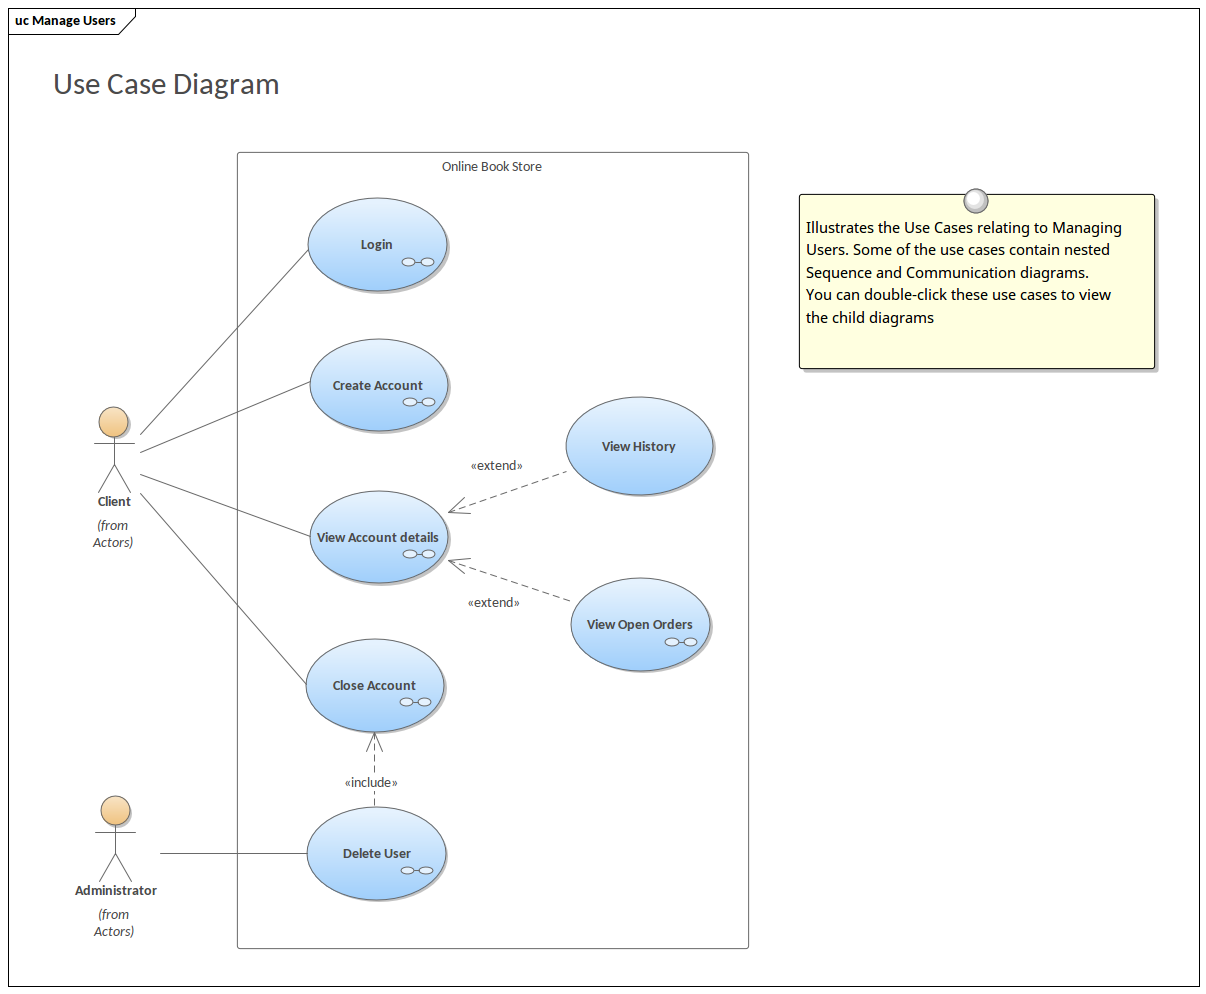 Use Case Model - Bookstore | Enterprise Architect Diagrams Gallery Use Case Diagram on use case statement, use case line, use case flow, agile software development, use case scenarios, use case art, timing diagram, functional requirements, use case document, communication diagram, use case model, use case computer, use case illustration, use case architecture, use case template, use case solution, deployment diagram, use case words, user story, use case writing, state diagram, traceability matrix, requirements analysis, use case map, unified modeling language, use case graph, use case project, component diagram, use case description, use case figure, use case presentation, software requirements specification,